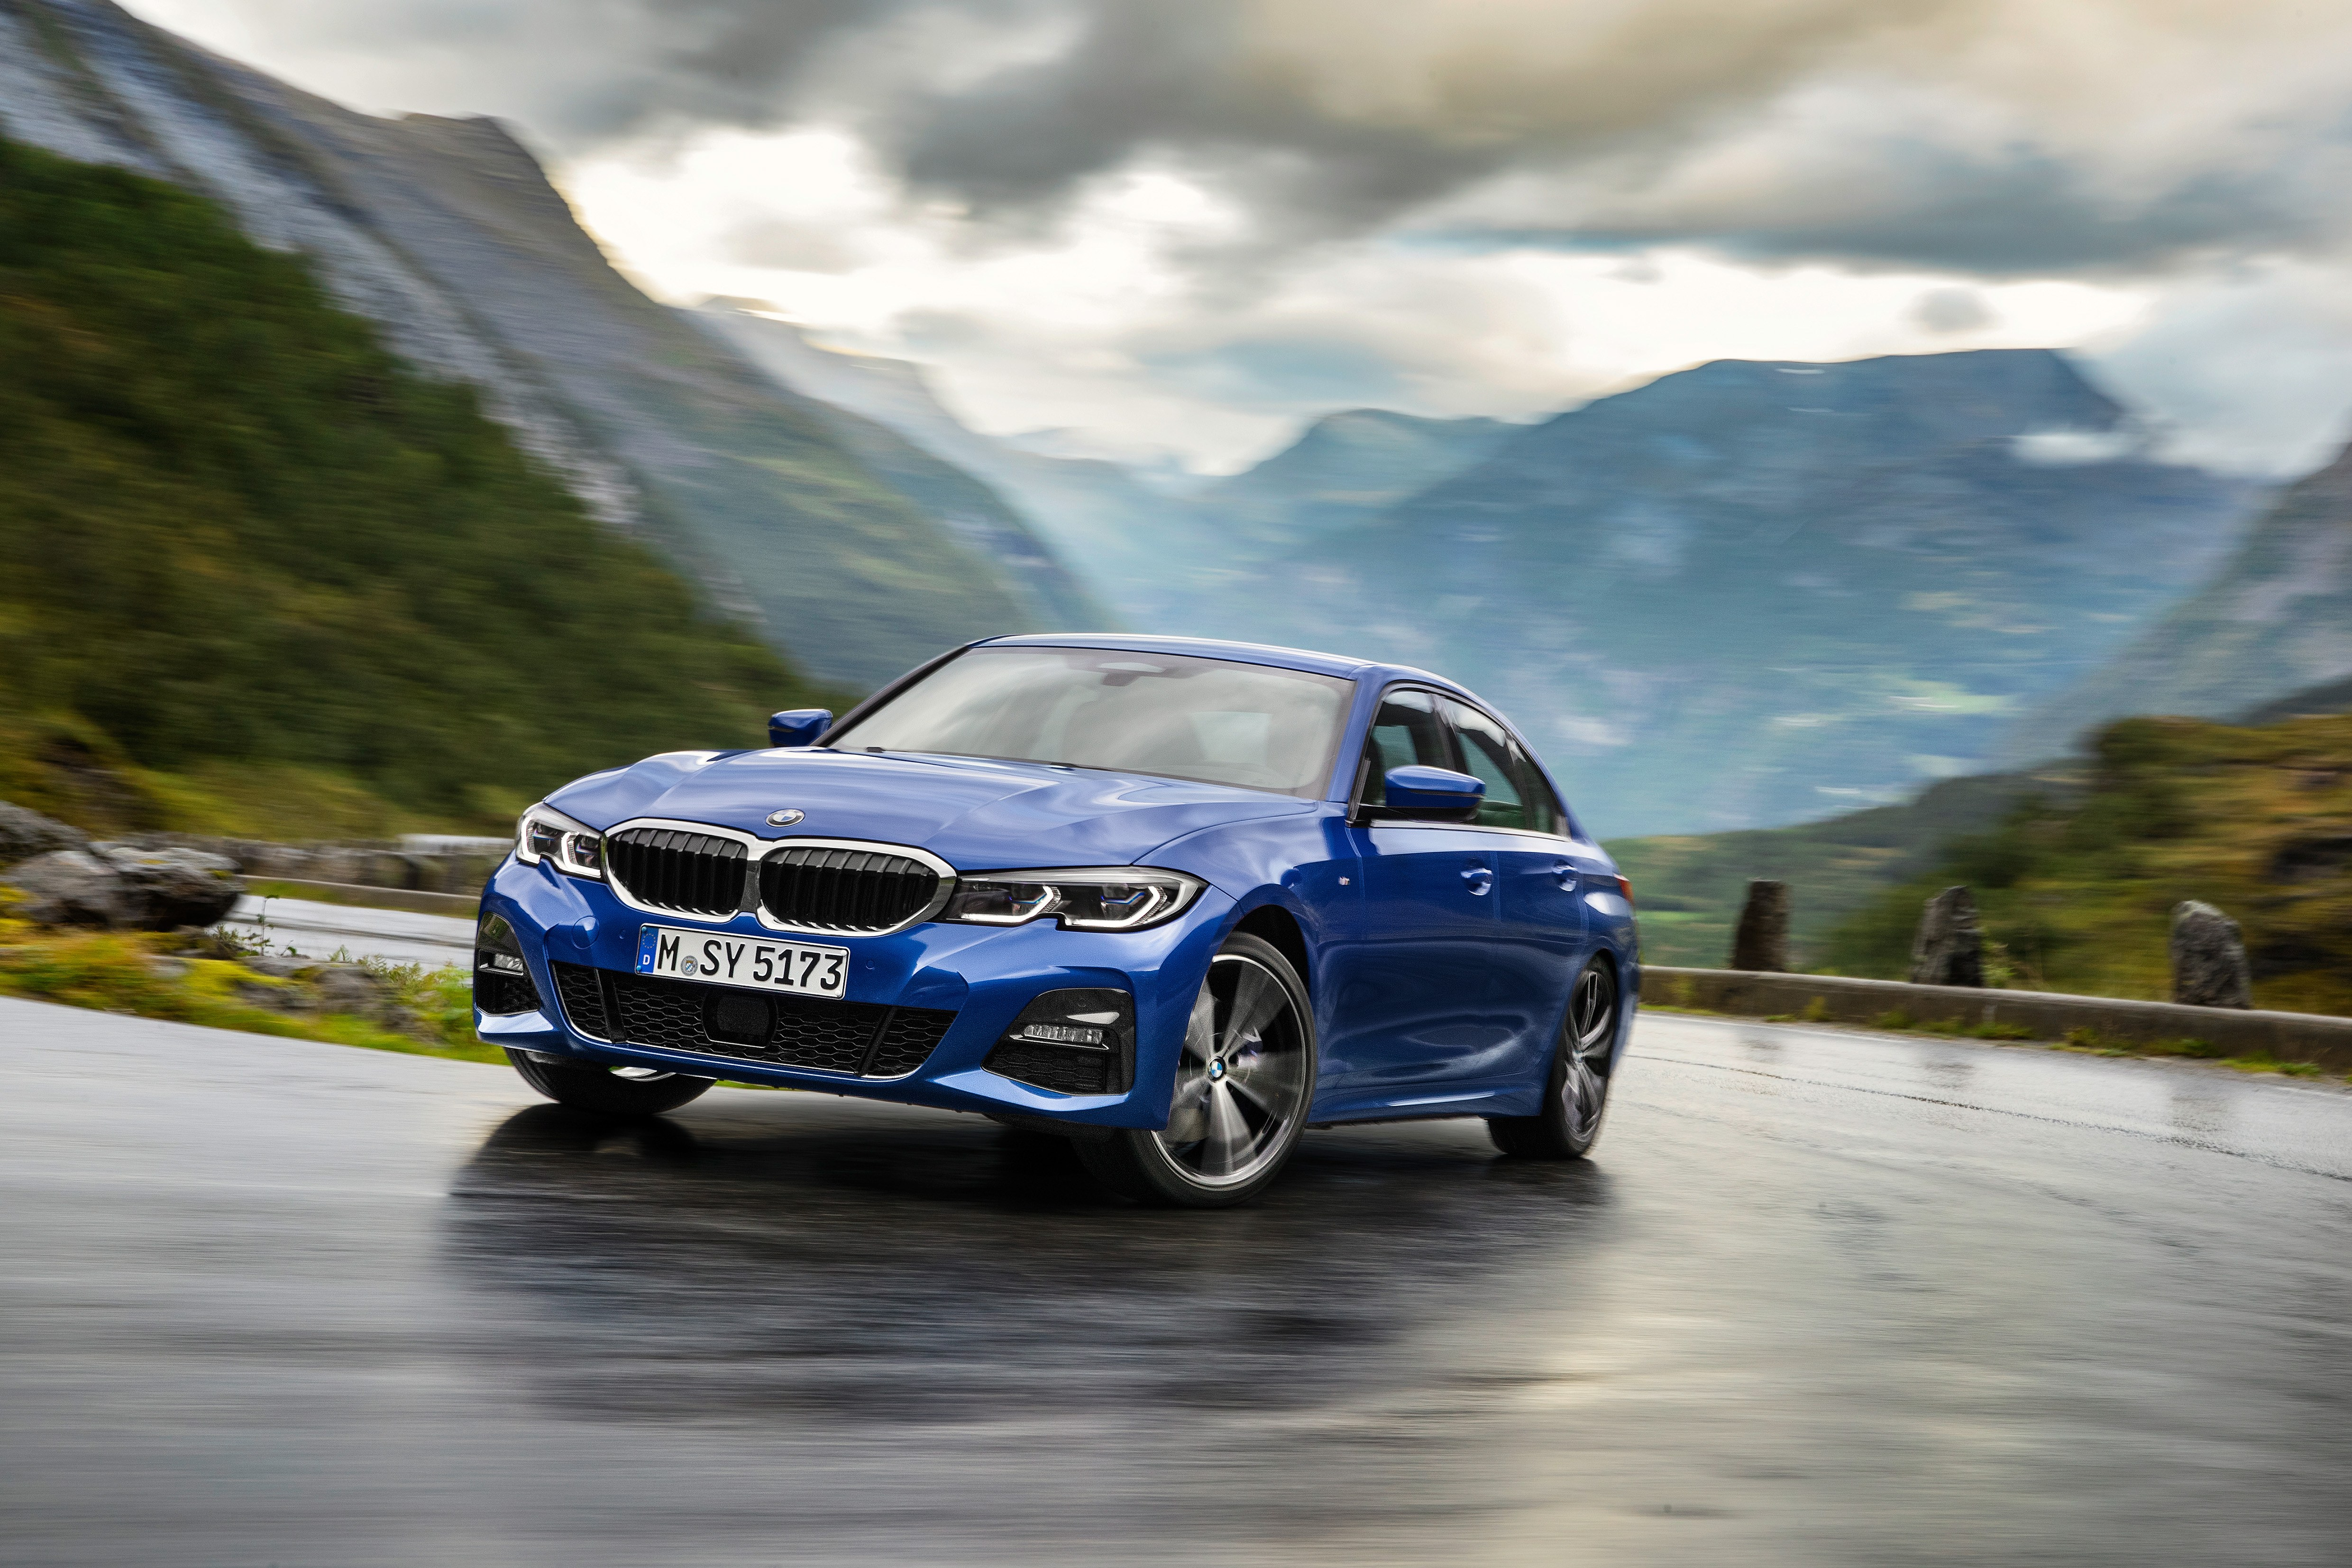 The 2020 BMW 3 Series Sedan. Starting from $528 / month.